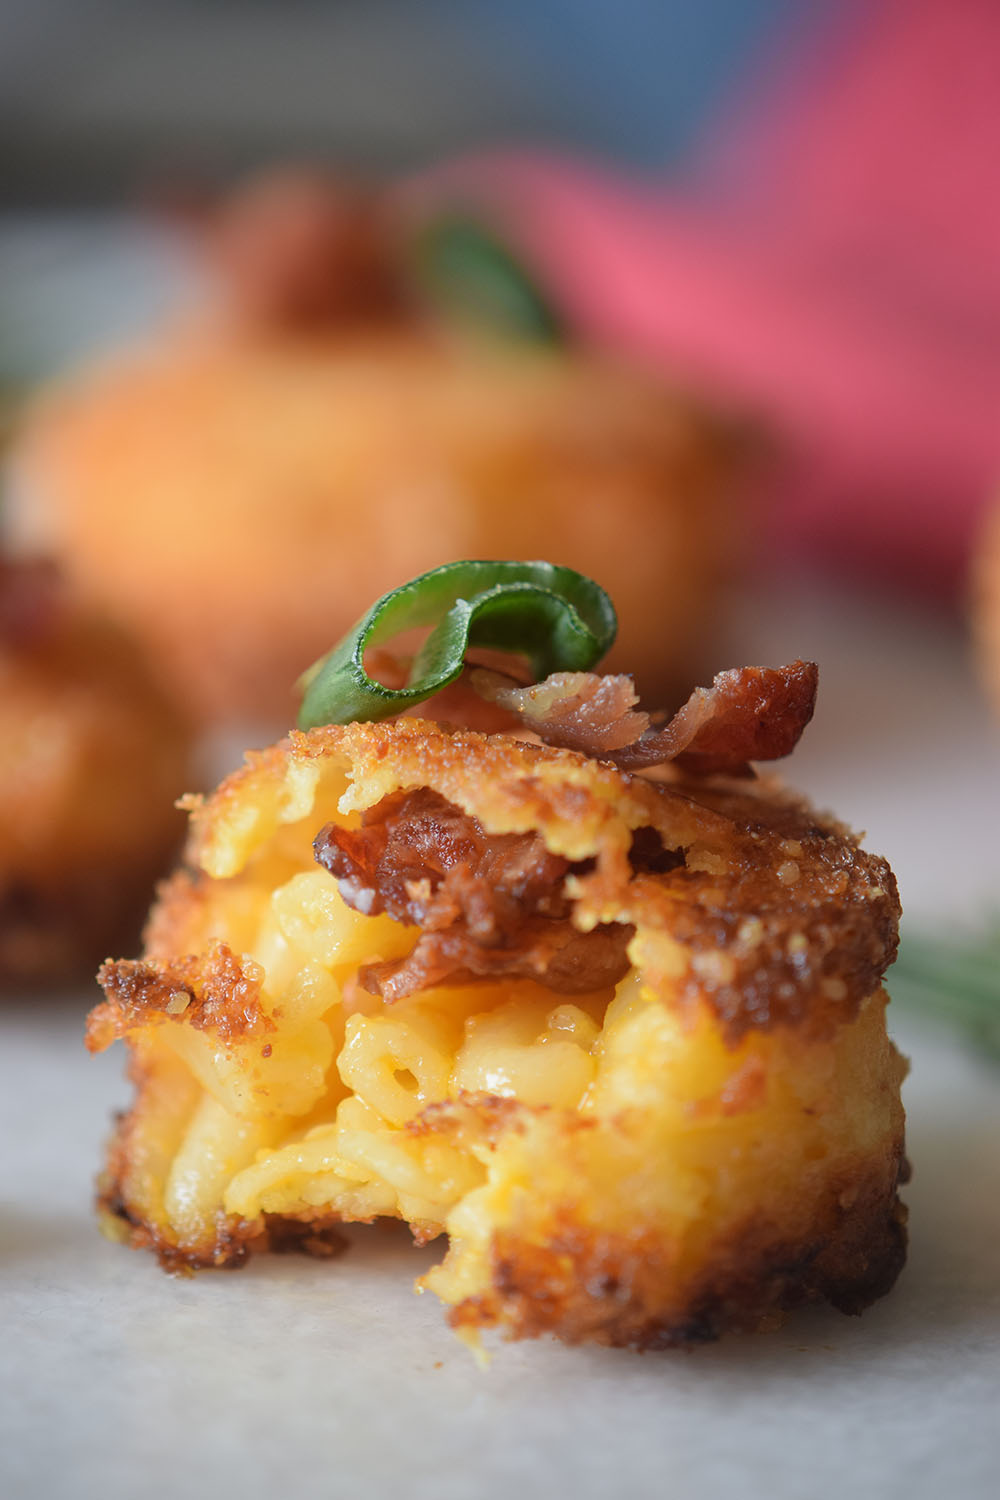 Fried mac and cheese with bacon in the center